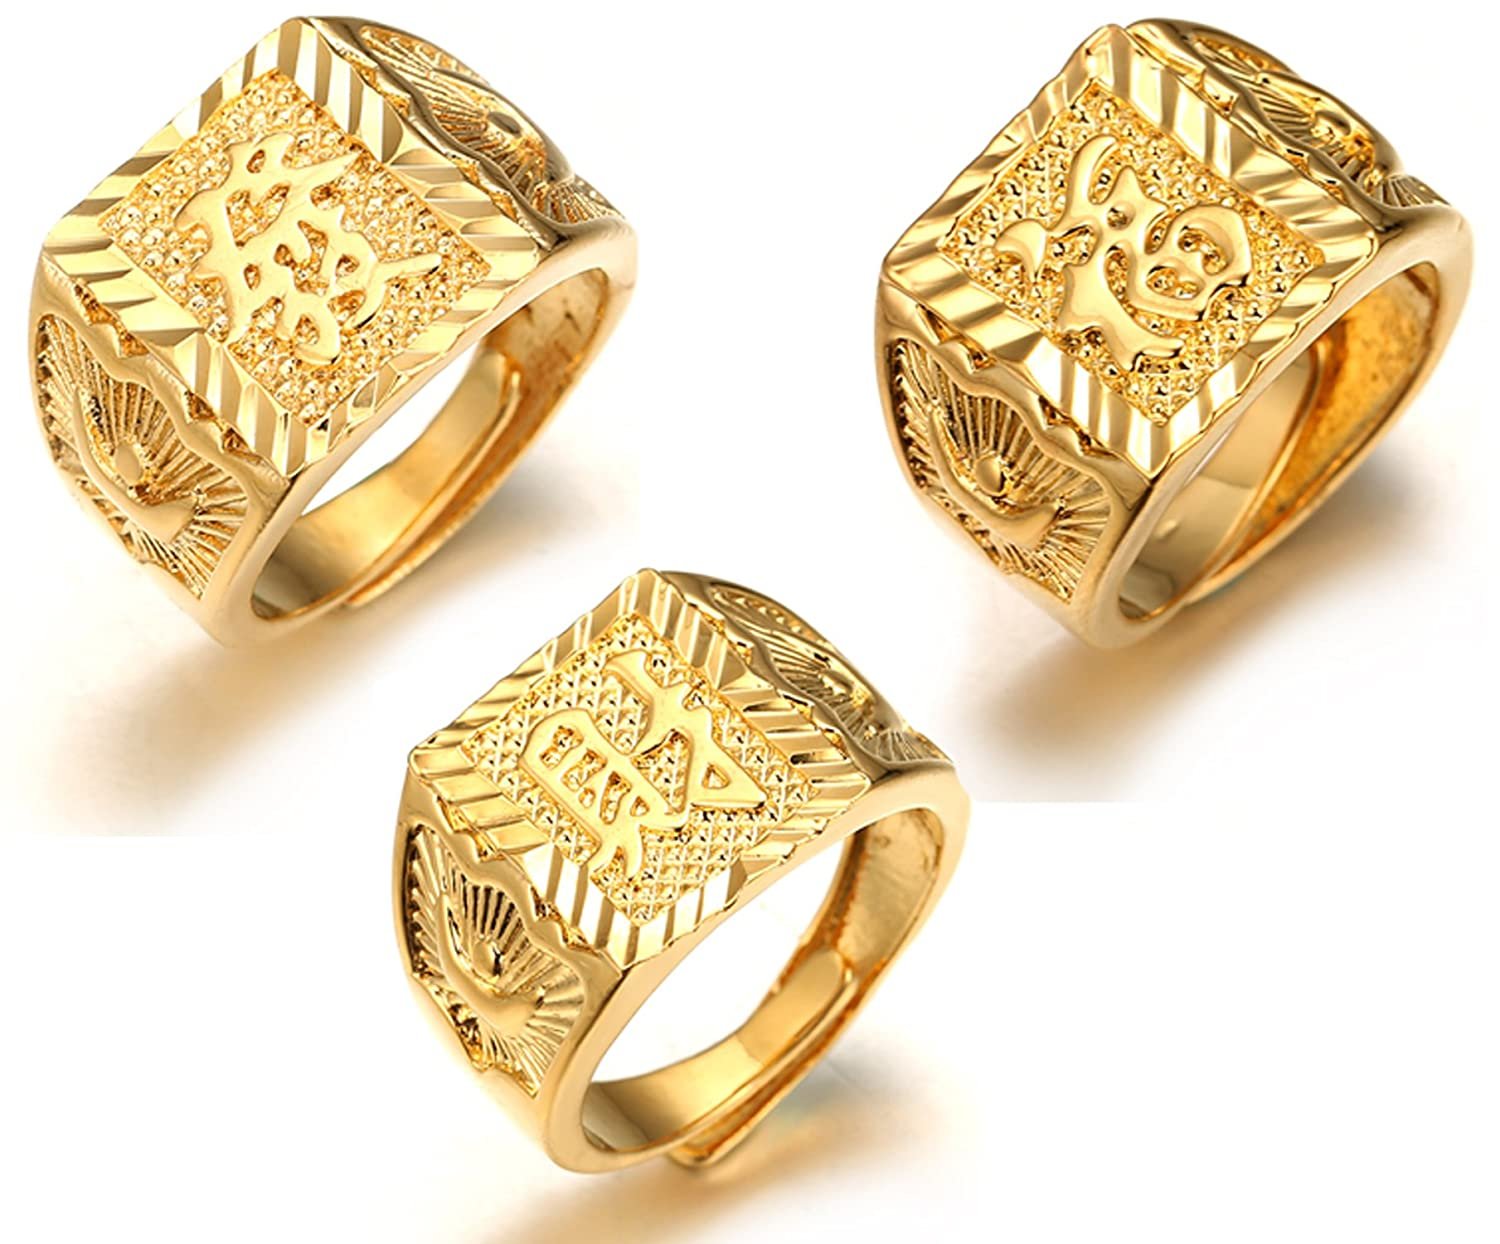 Halukakah ● Gold Bless All ● Men's 18K Gold Plated Kanji Ring Rich/Luck/Wealth Set Size Adjustable with Free Giftbox HALUKAKAHJWKX0200-FFC